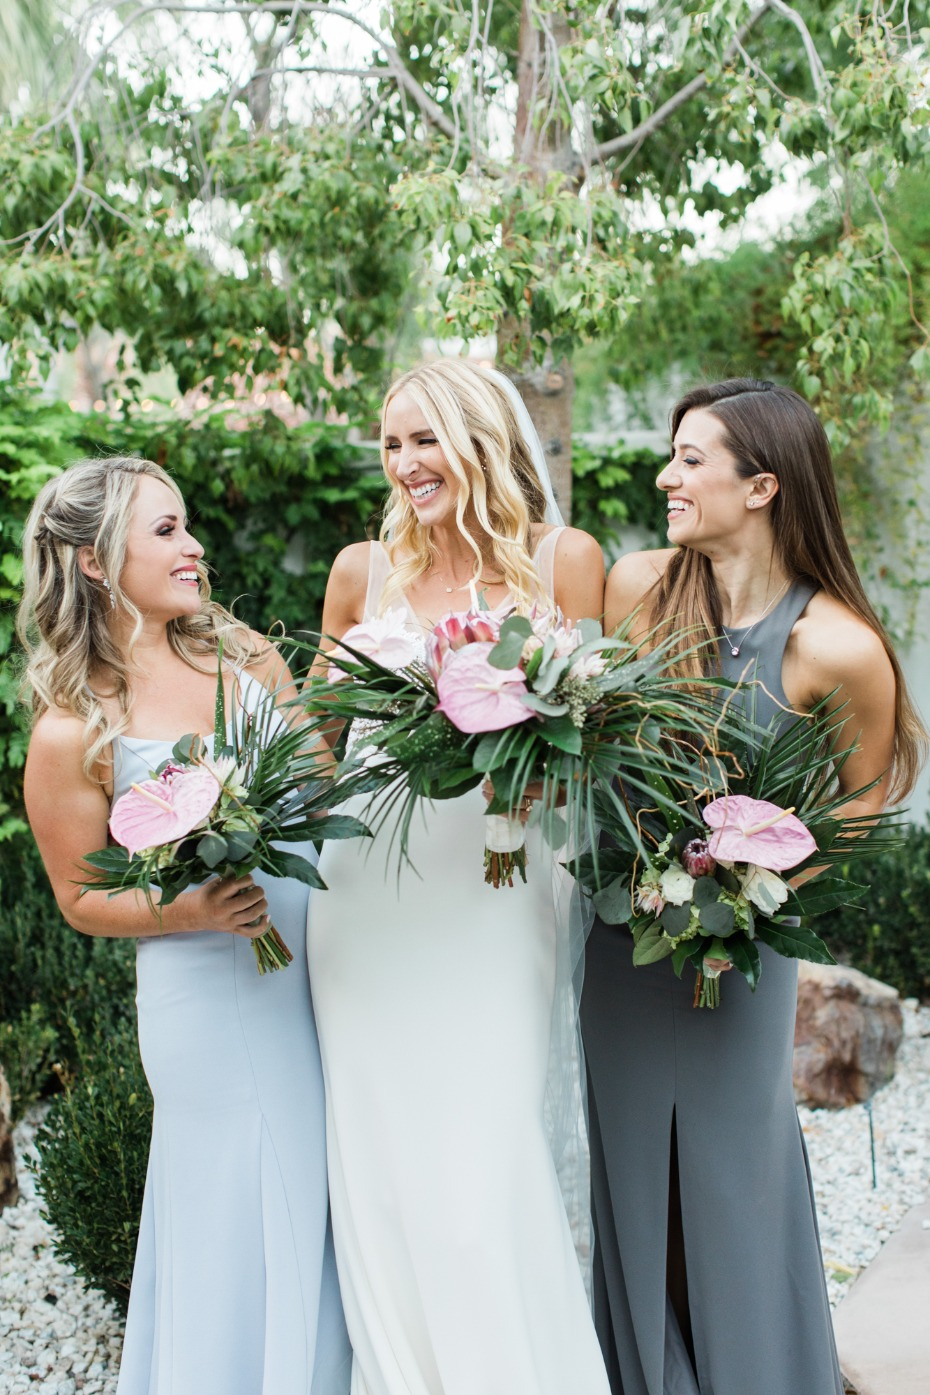 Bridesmaids in blue and grey